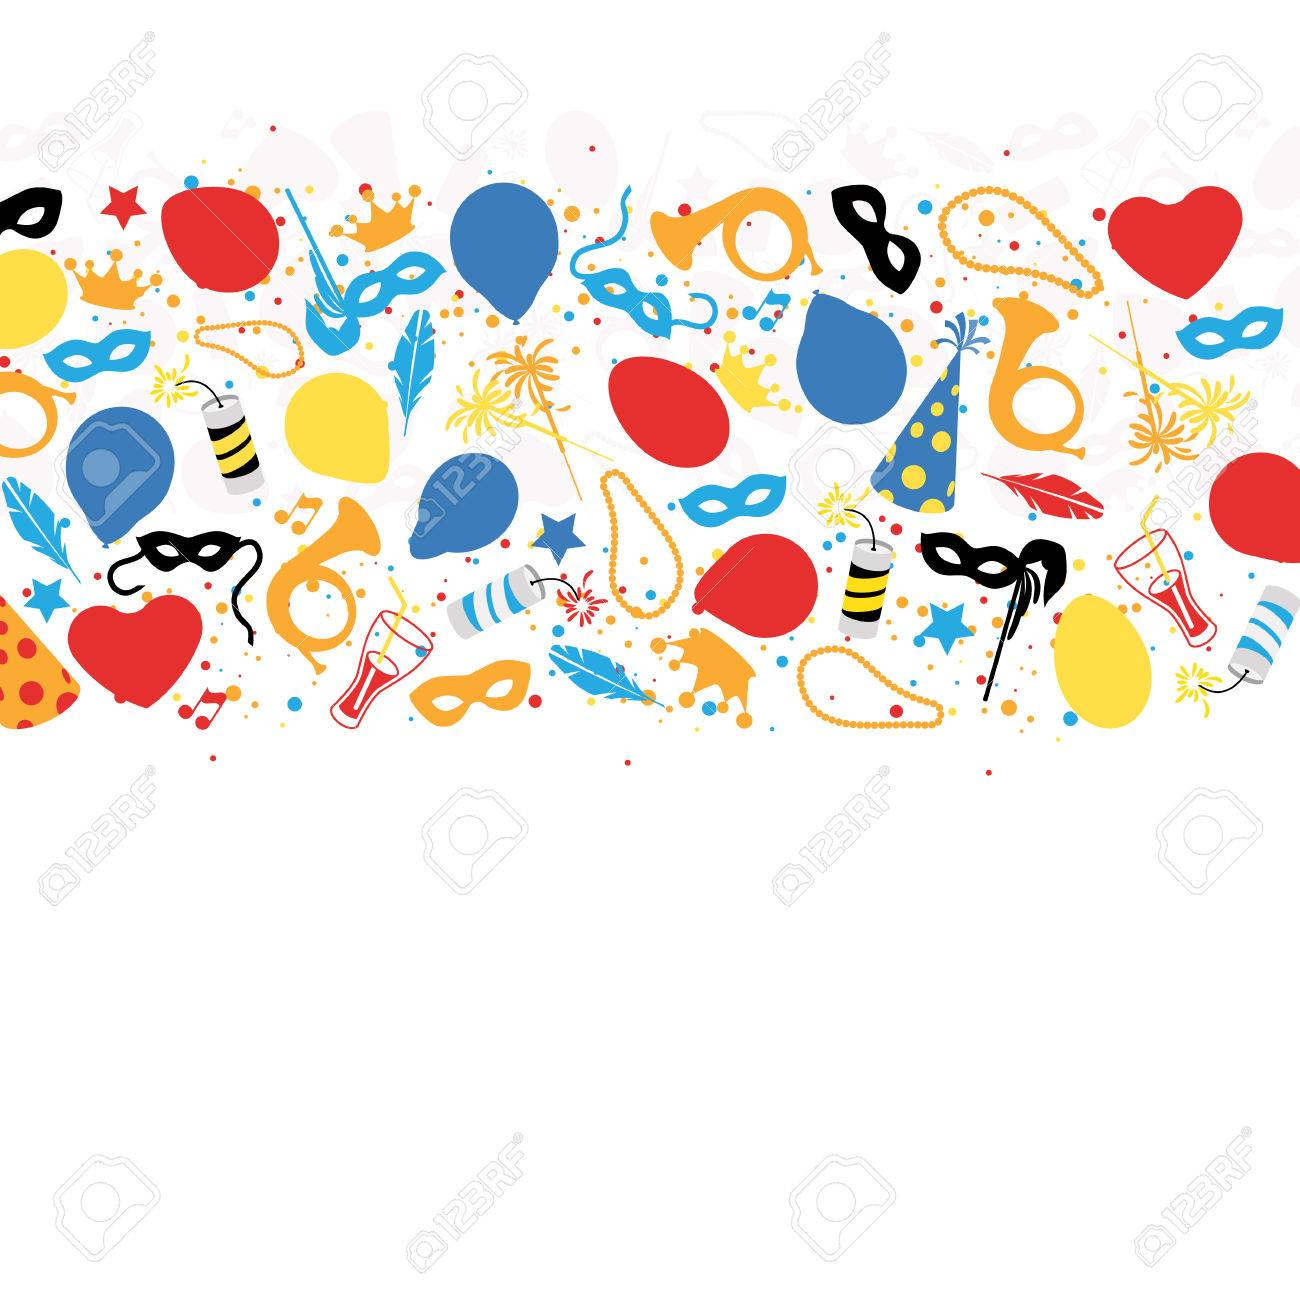 Carnival, Festival, Party, Birthday Decoration, Vector - 44037199